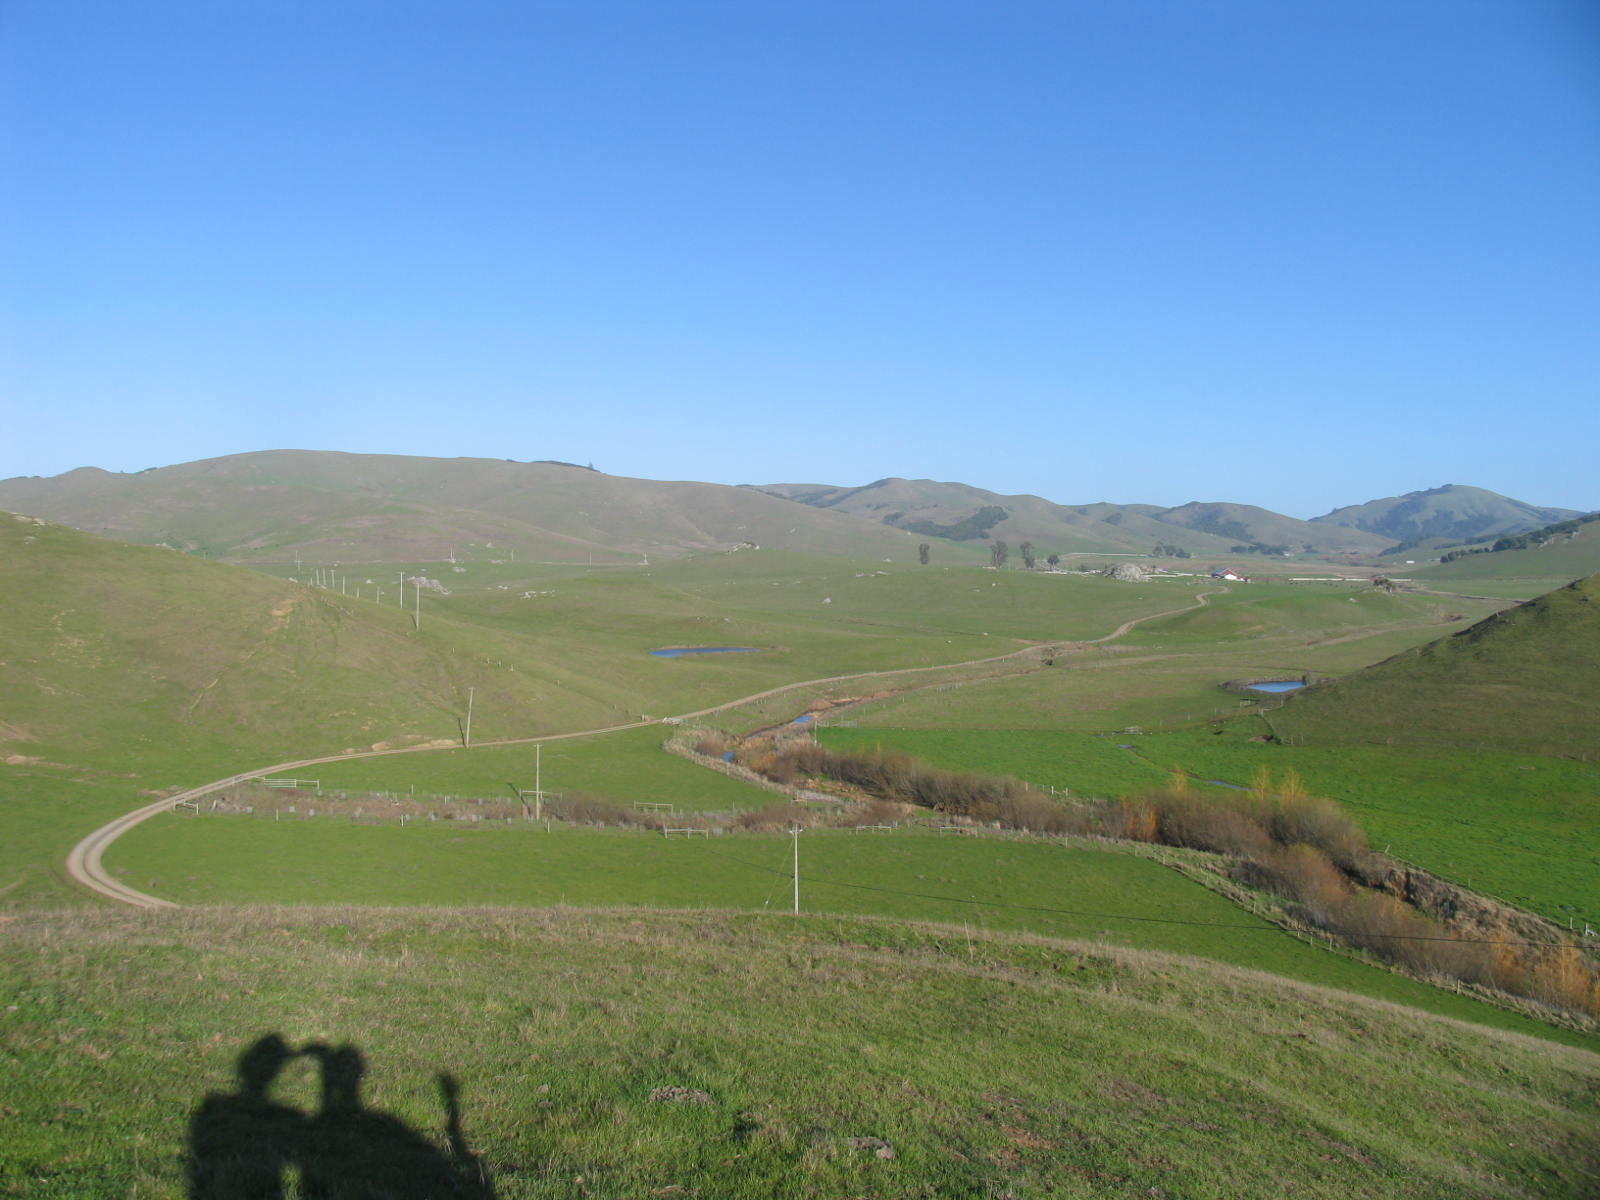 A bright blue-sky day in the Marin hills is shown, from the same location as the previous image. All the fields and hills are green, vibrant with growing grass, and some patches of trees and shrubs remain. Noticeably different is how the creek area in the foreground has been planted, with fences around new trees.